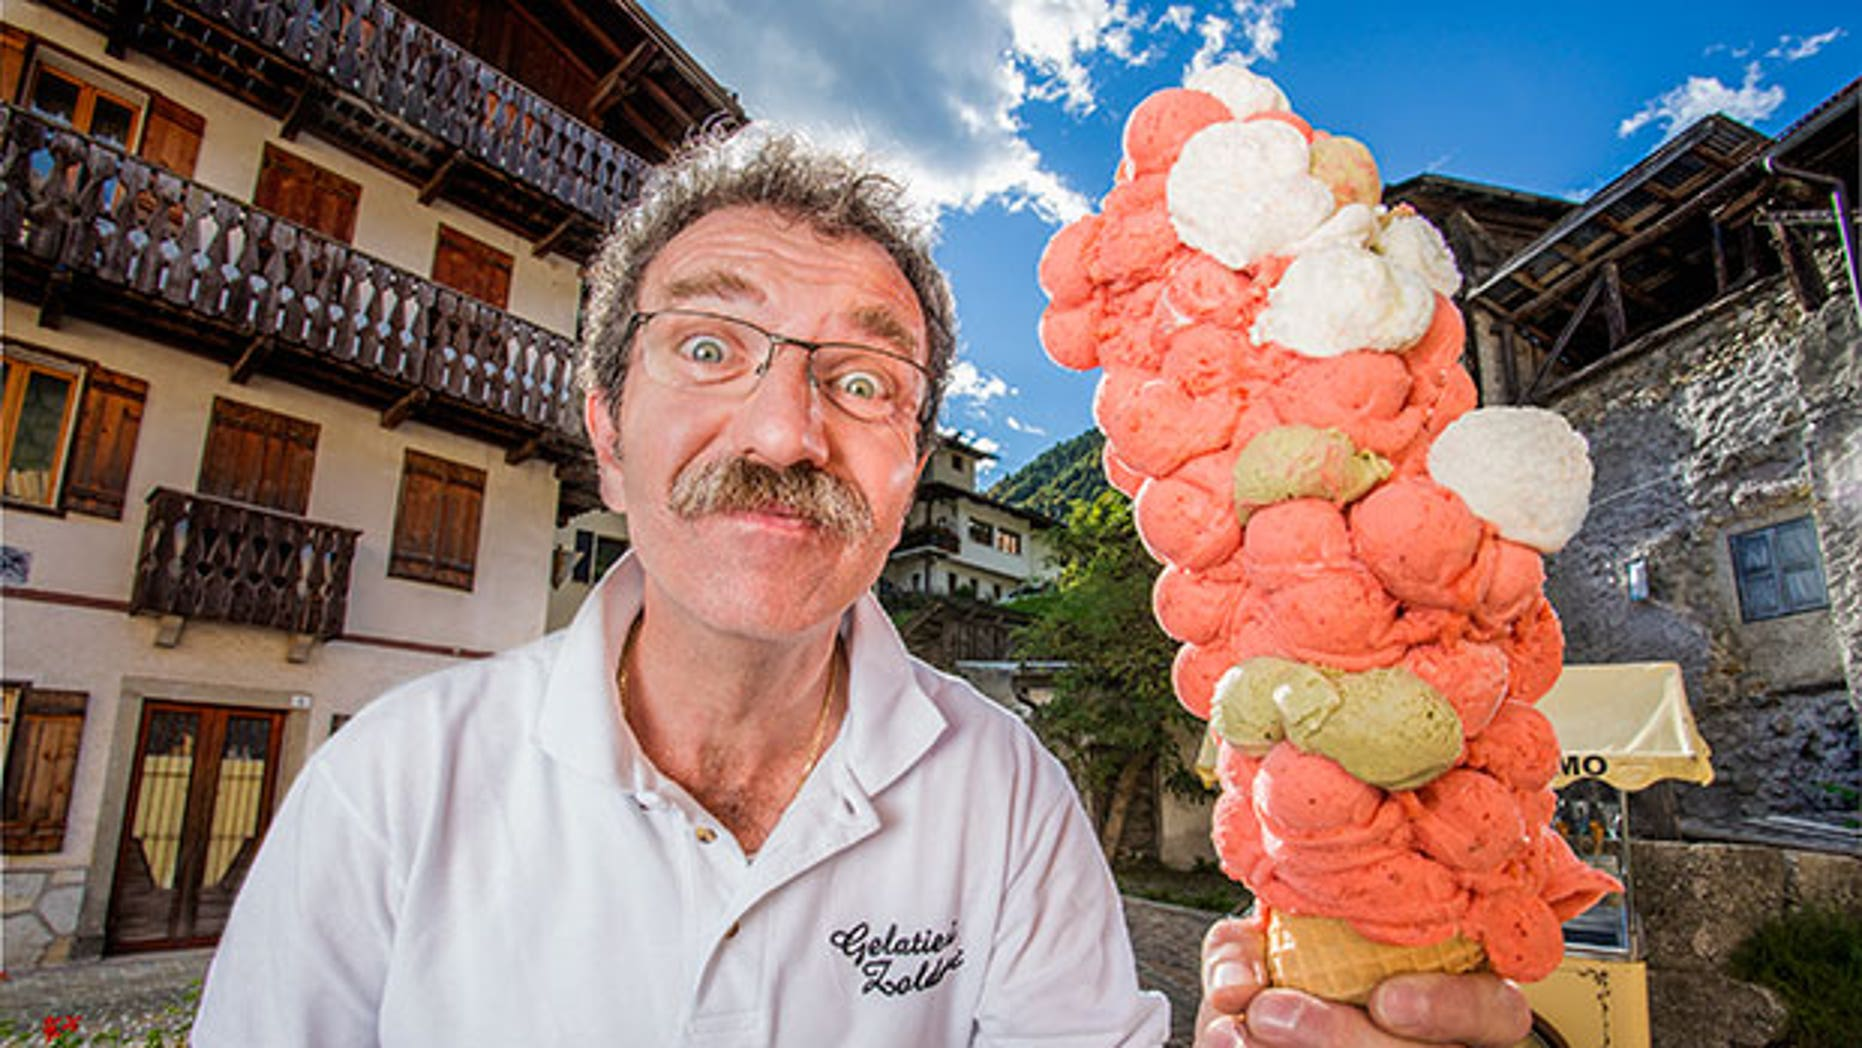 Italian Dimitri Panciera balances his record-breaking gelato cone with 121 individual scoops of ice cream.